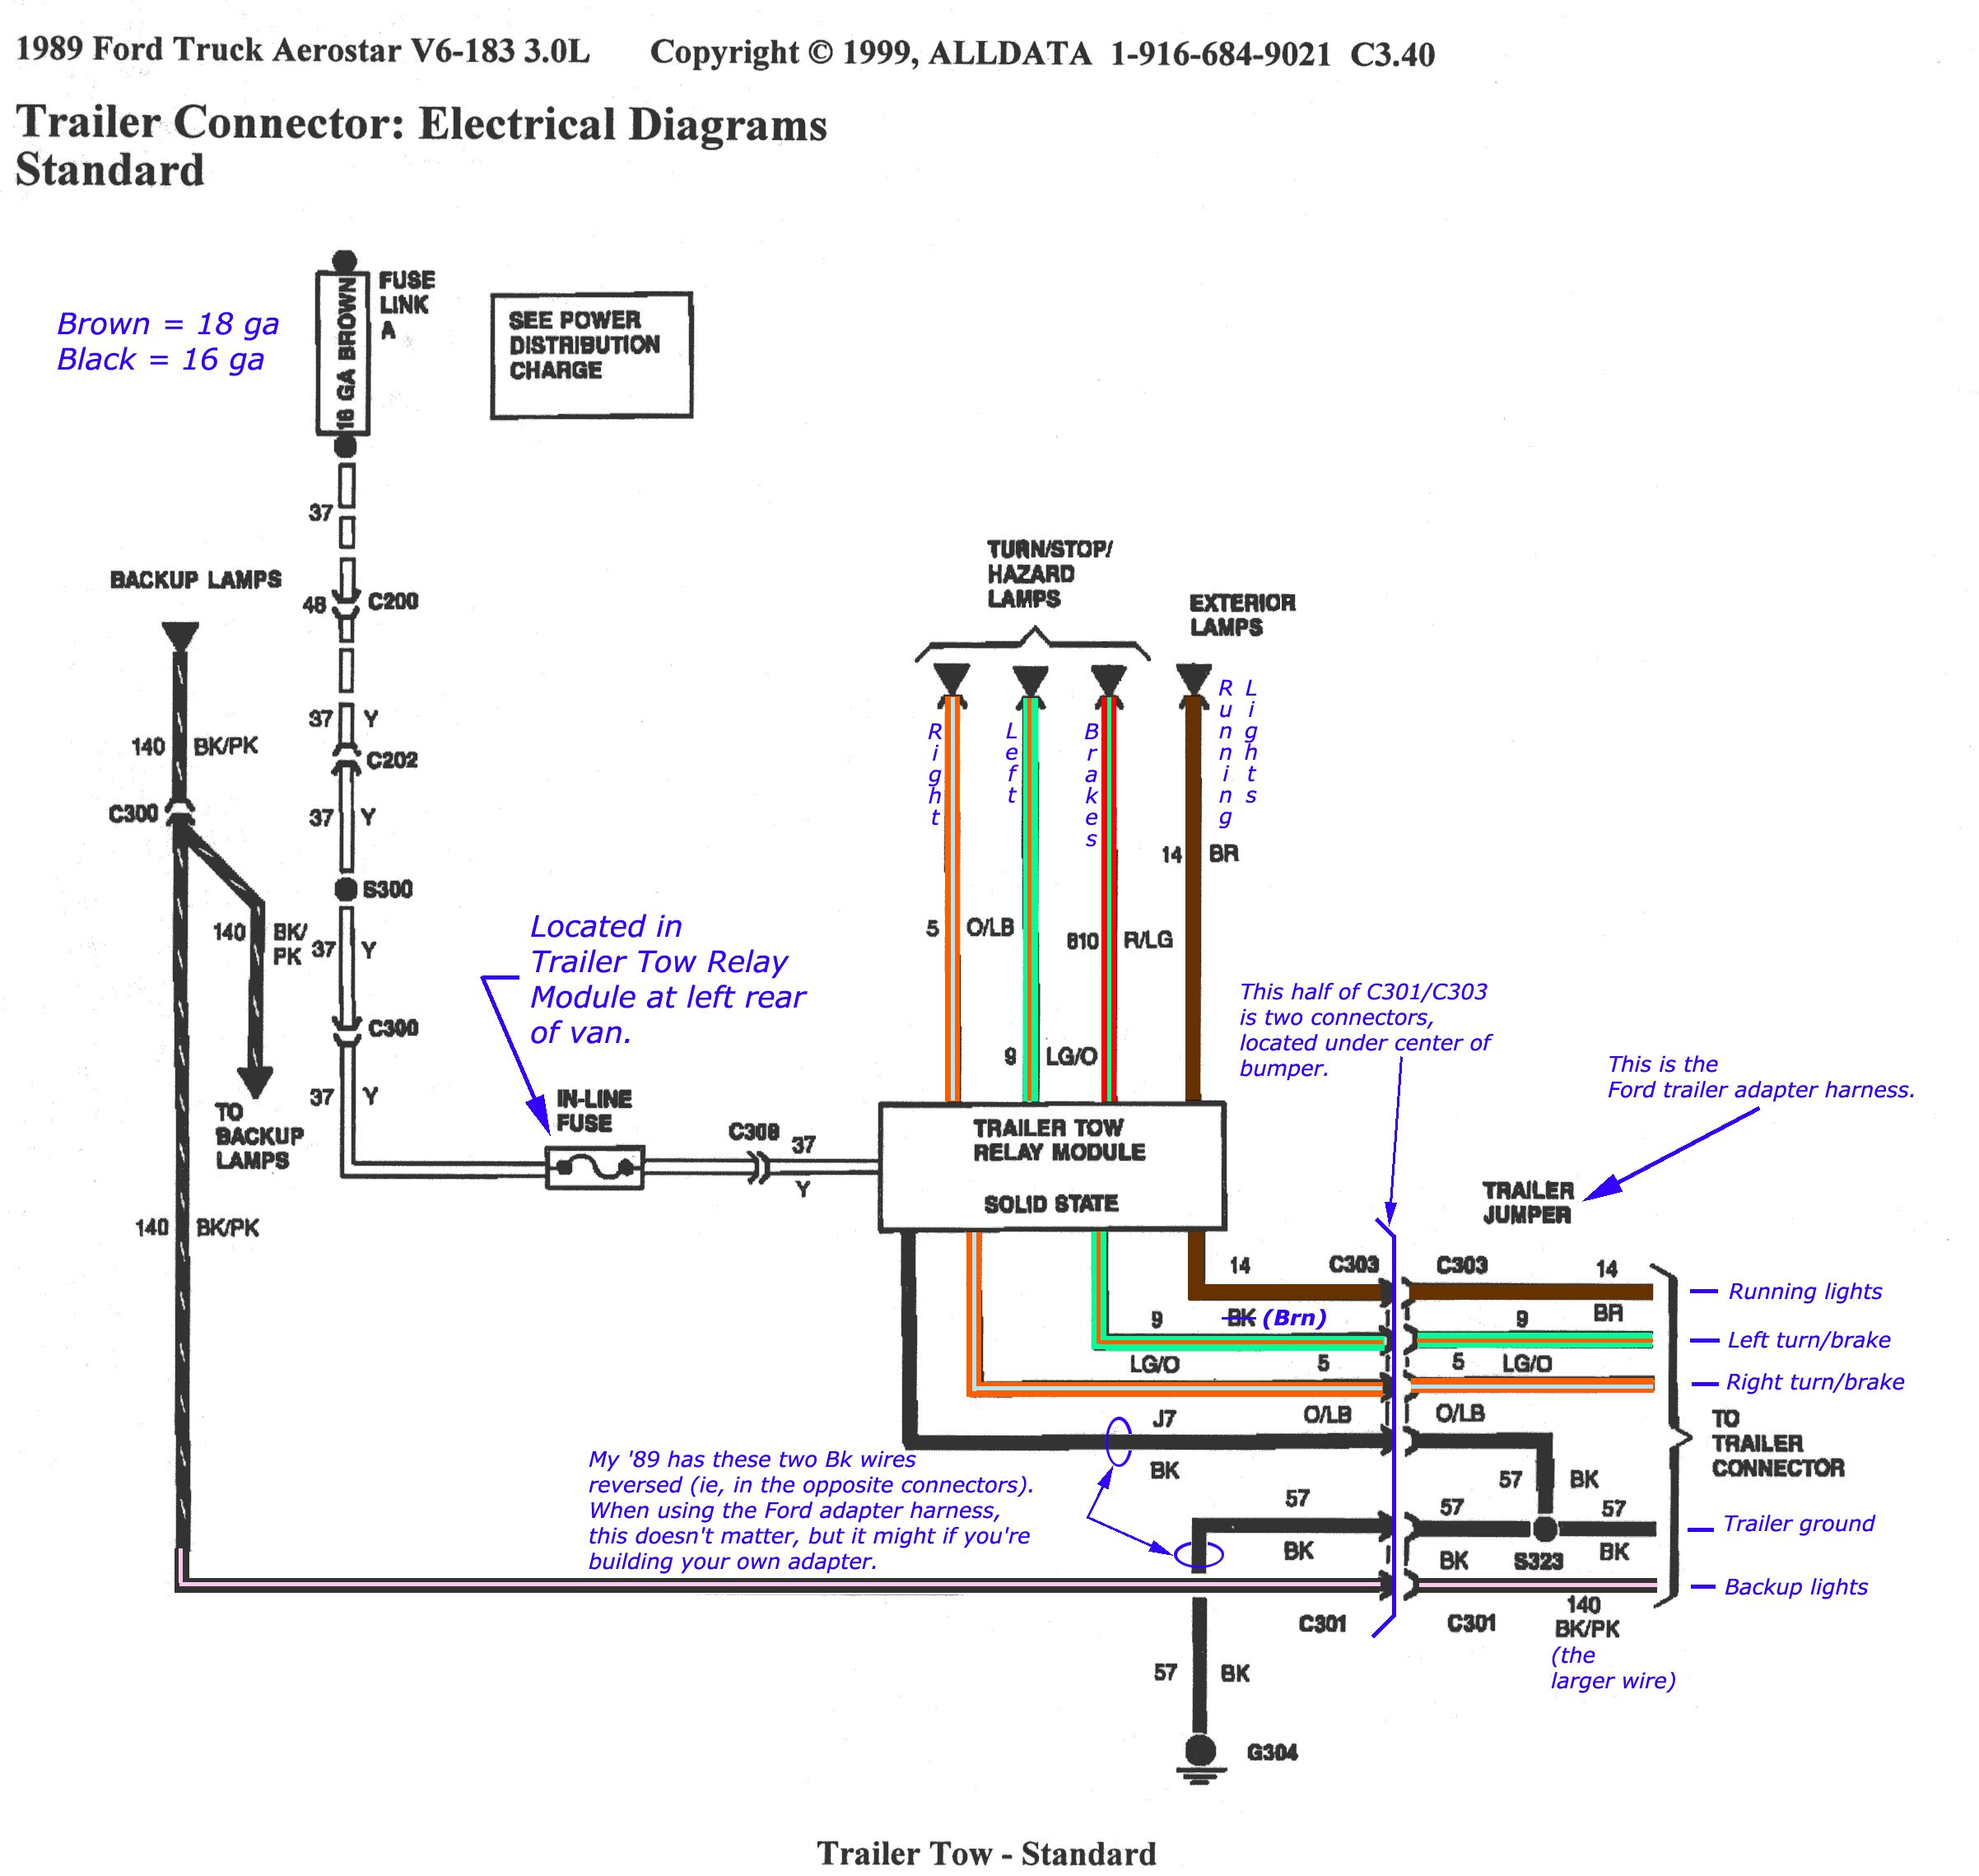 7 Pin Round Trailer Plug Wiring Diagram | Sensecurity - Round 7 Pin Trailer Plug Wiring Diagram